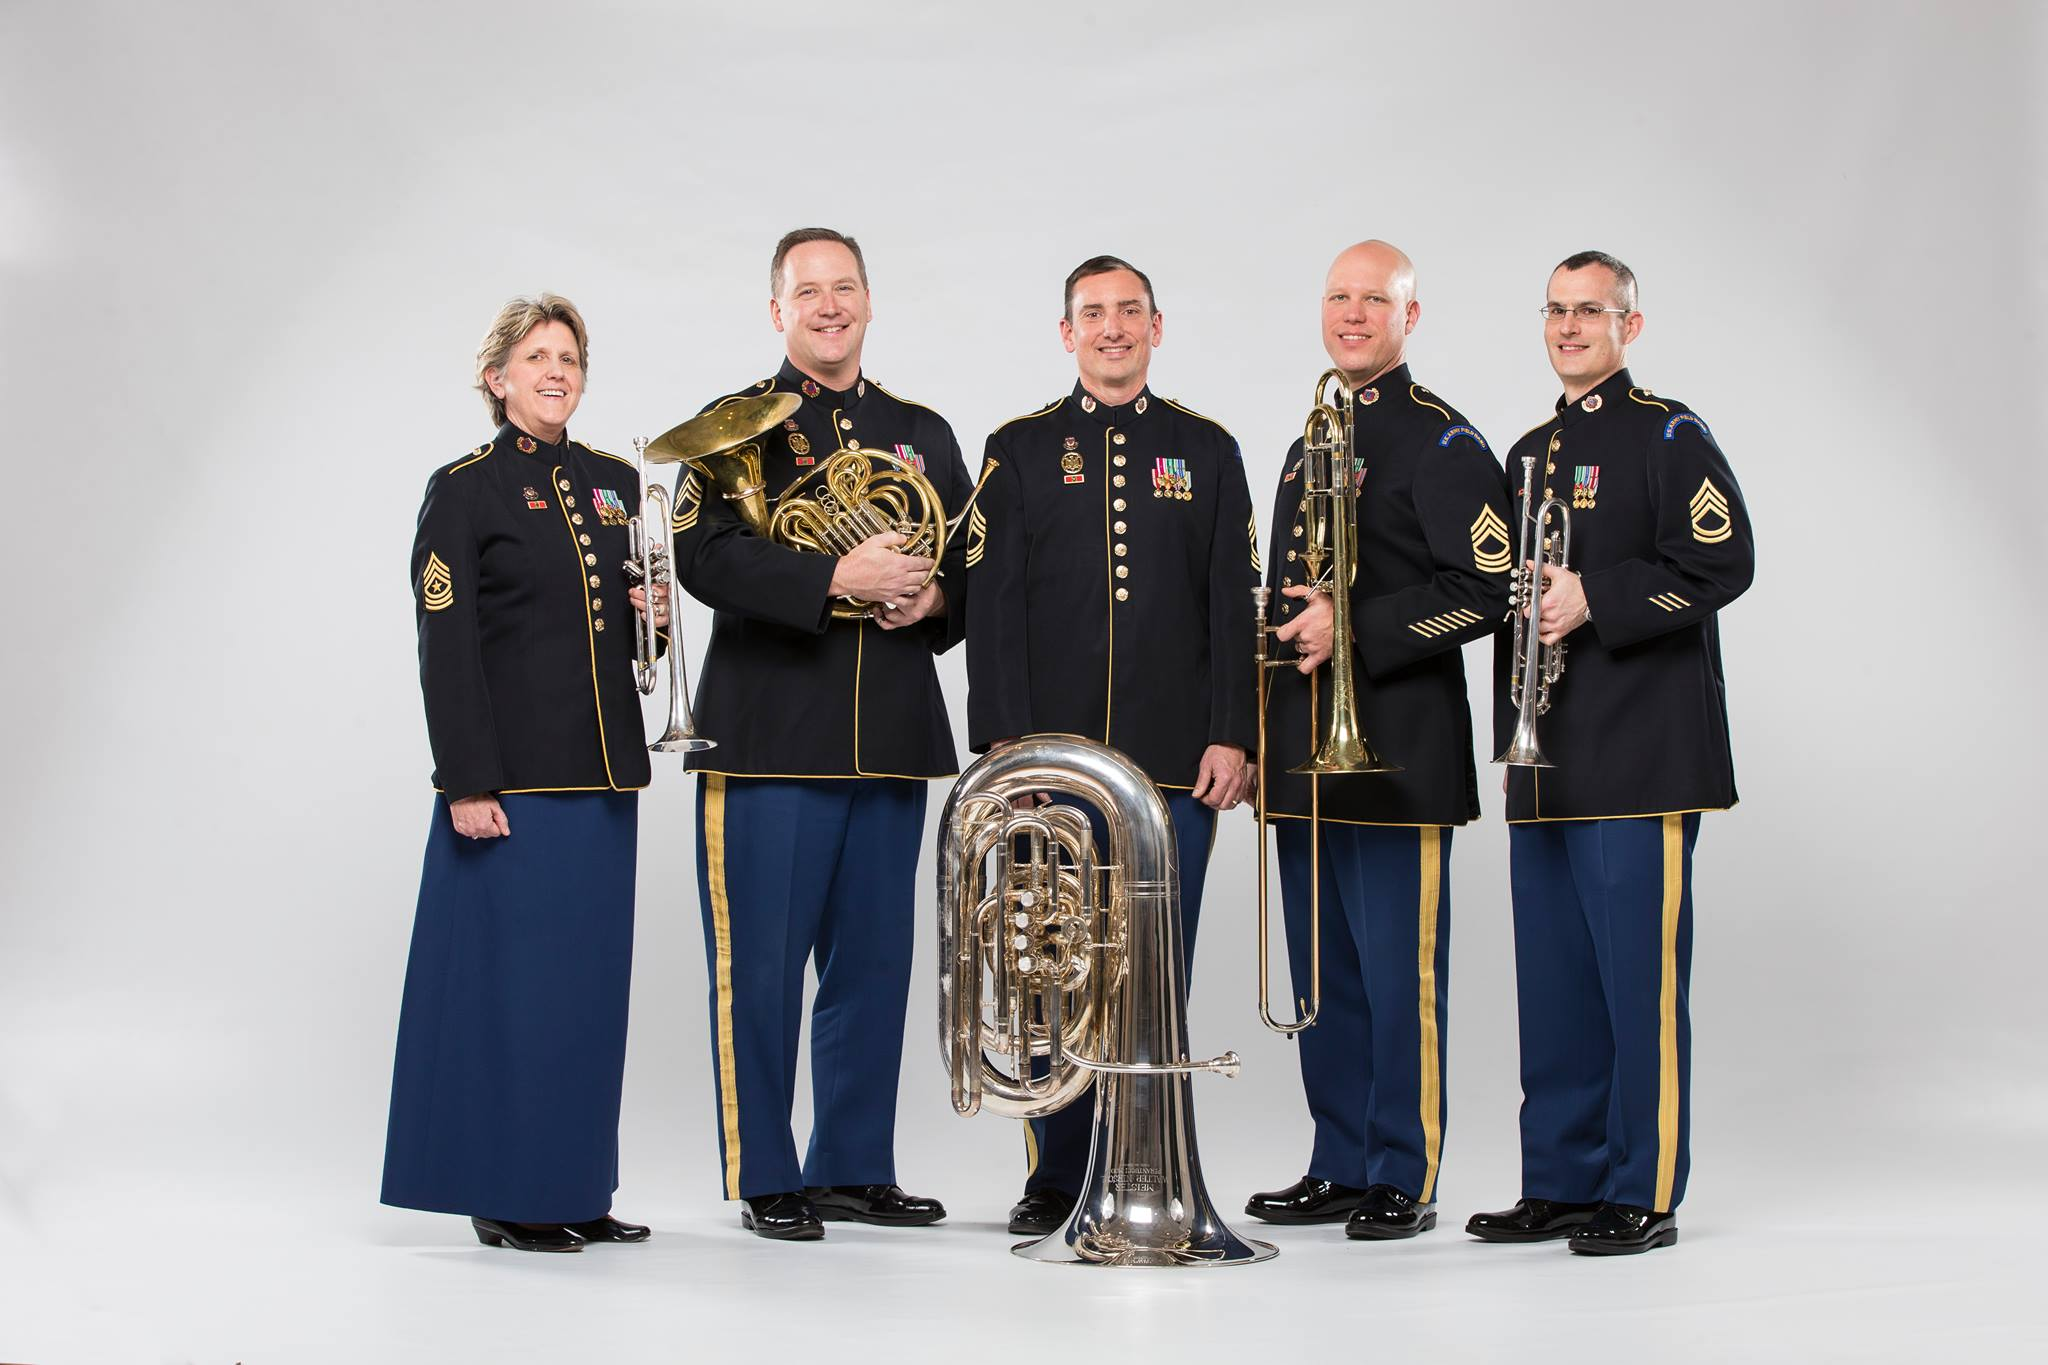 United States Army Field Band Brass Quintet to perform at Naturalization Ceremony on June 14, 2016, 1 p.m. at Homestead National Monument of America.